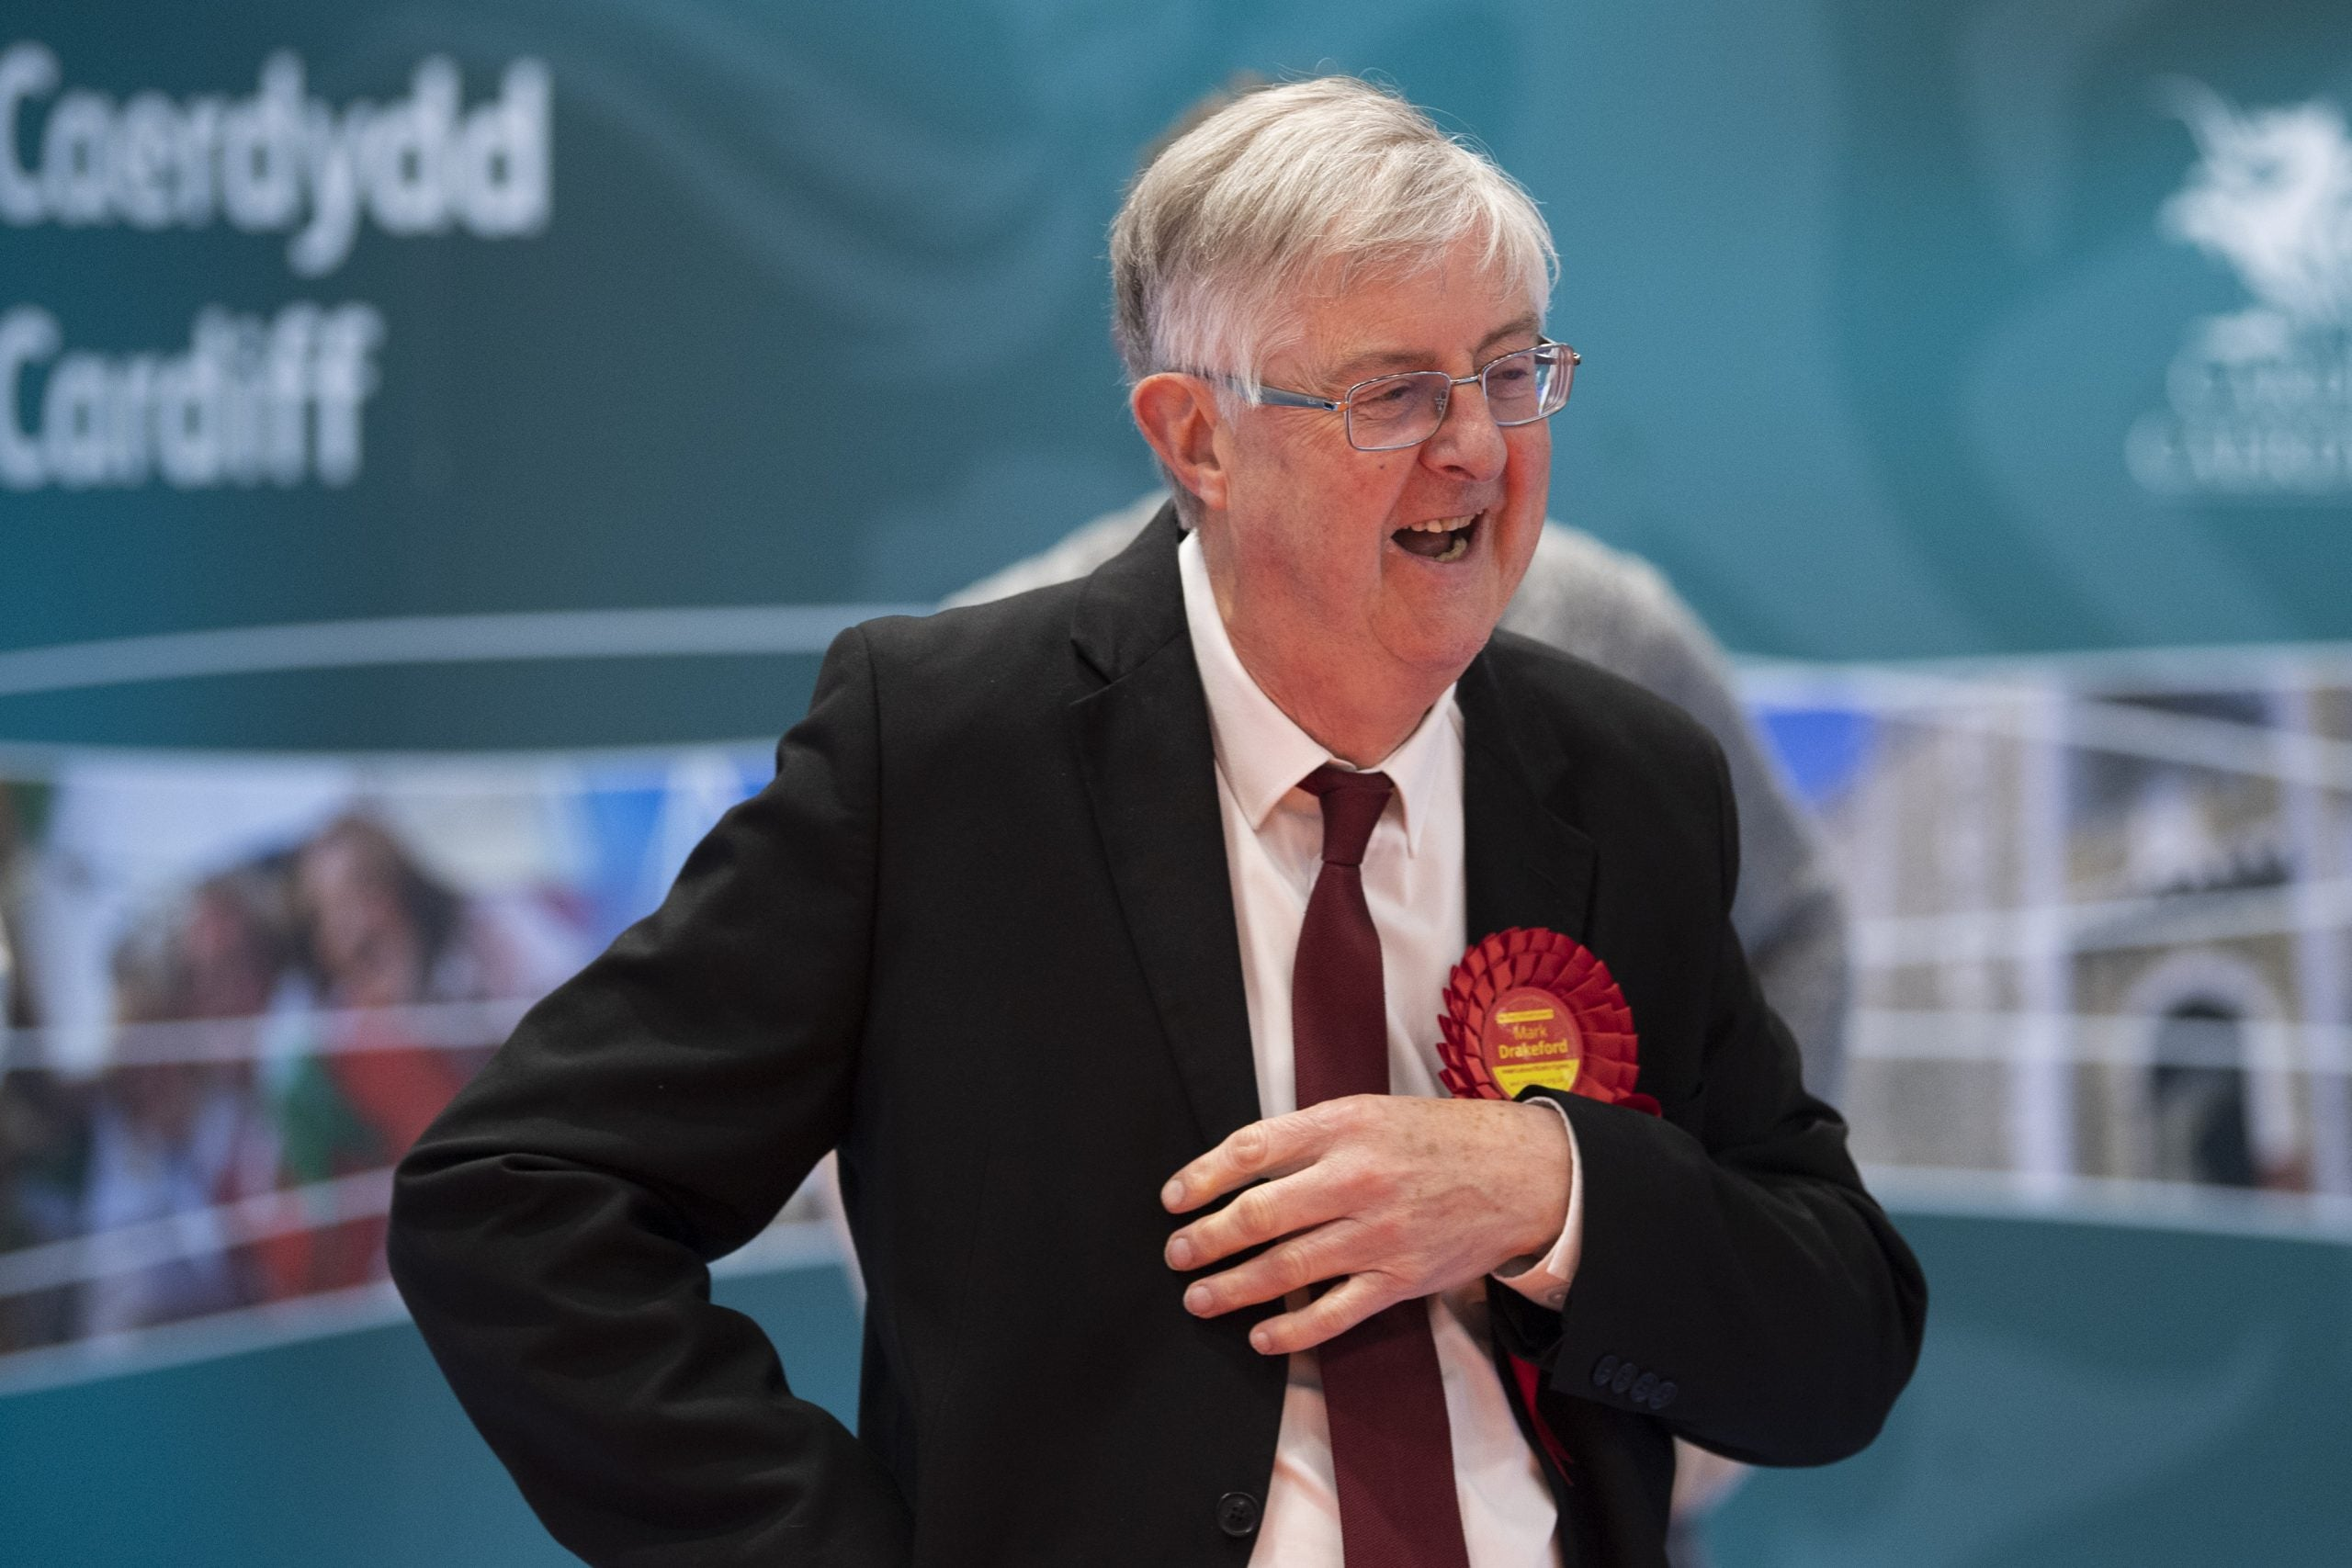 What are the lessons of Welsh Labour's remarkable success?